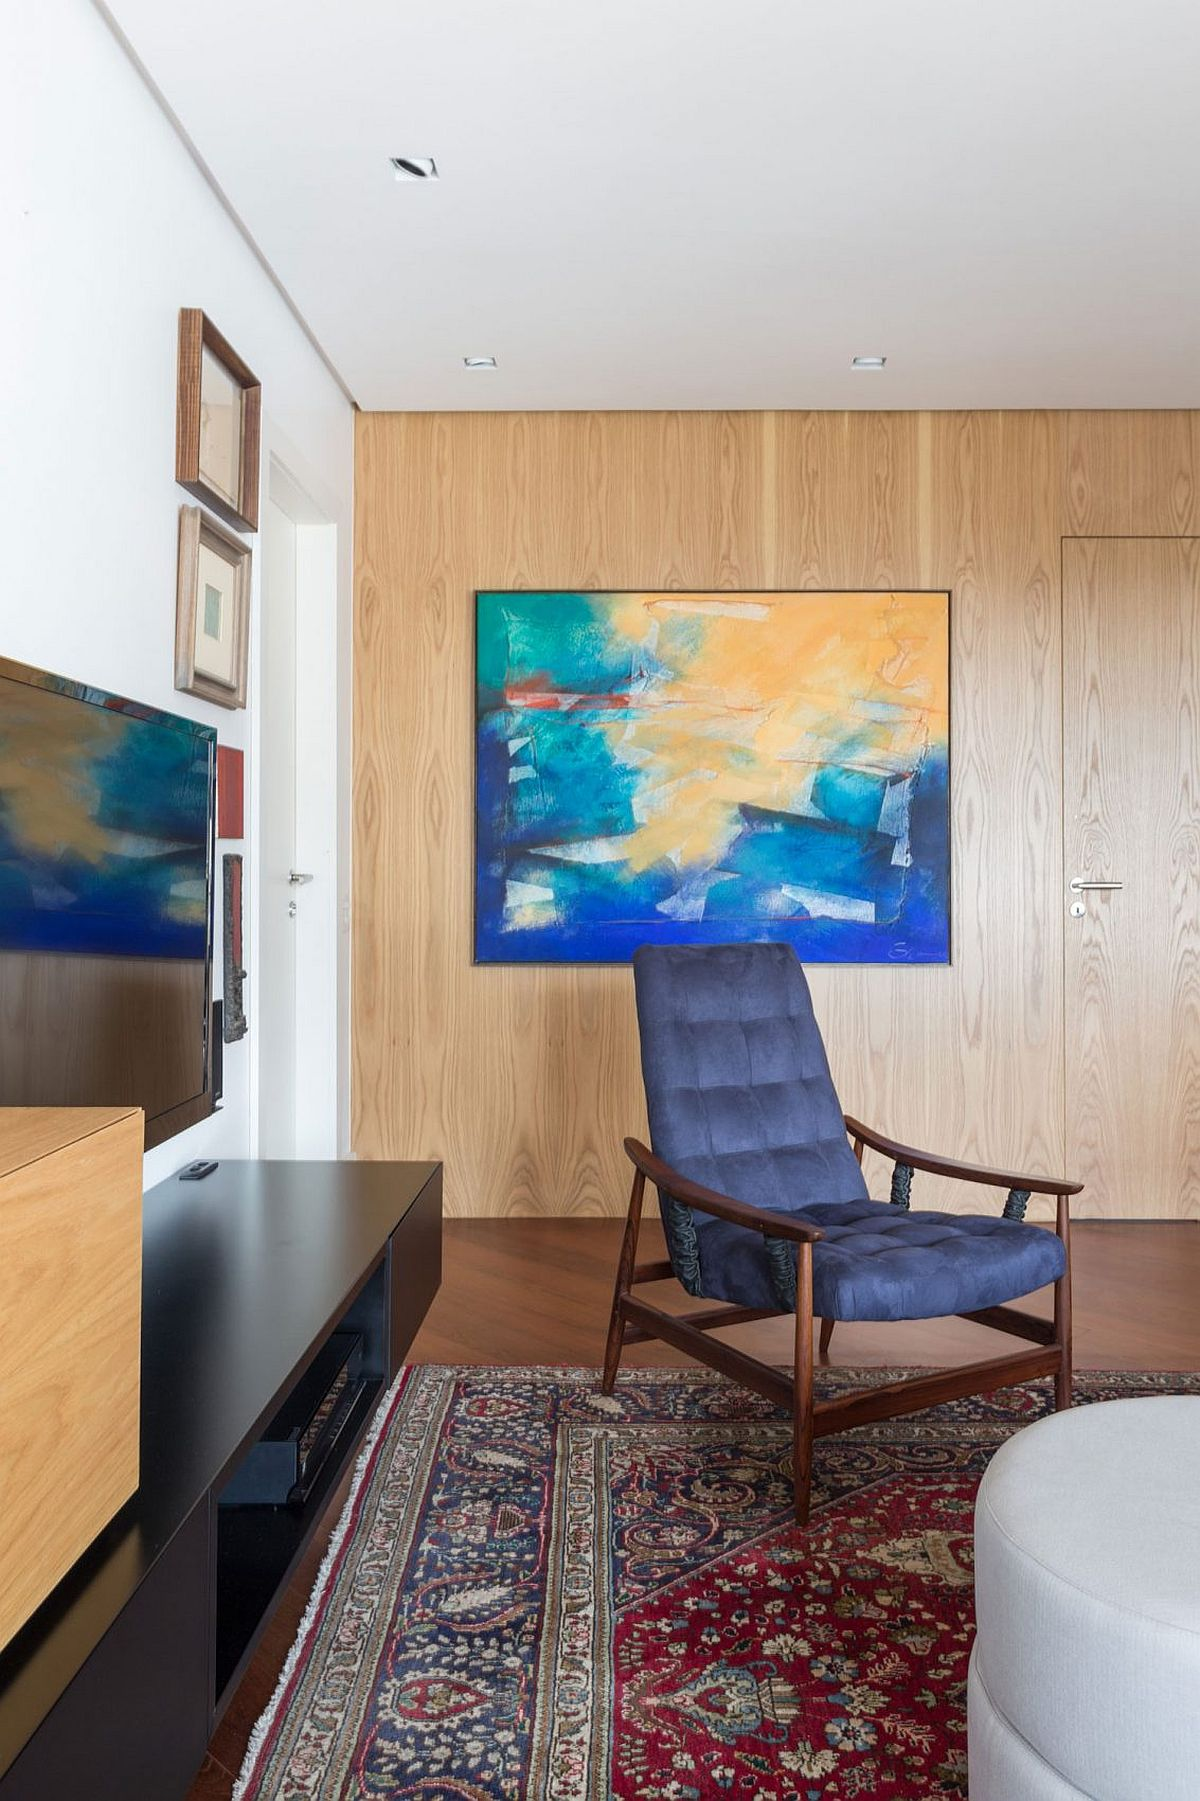 Modern wall art adds color to the interior